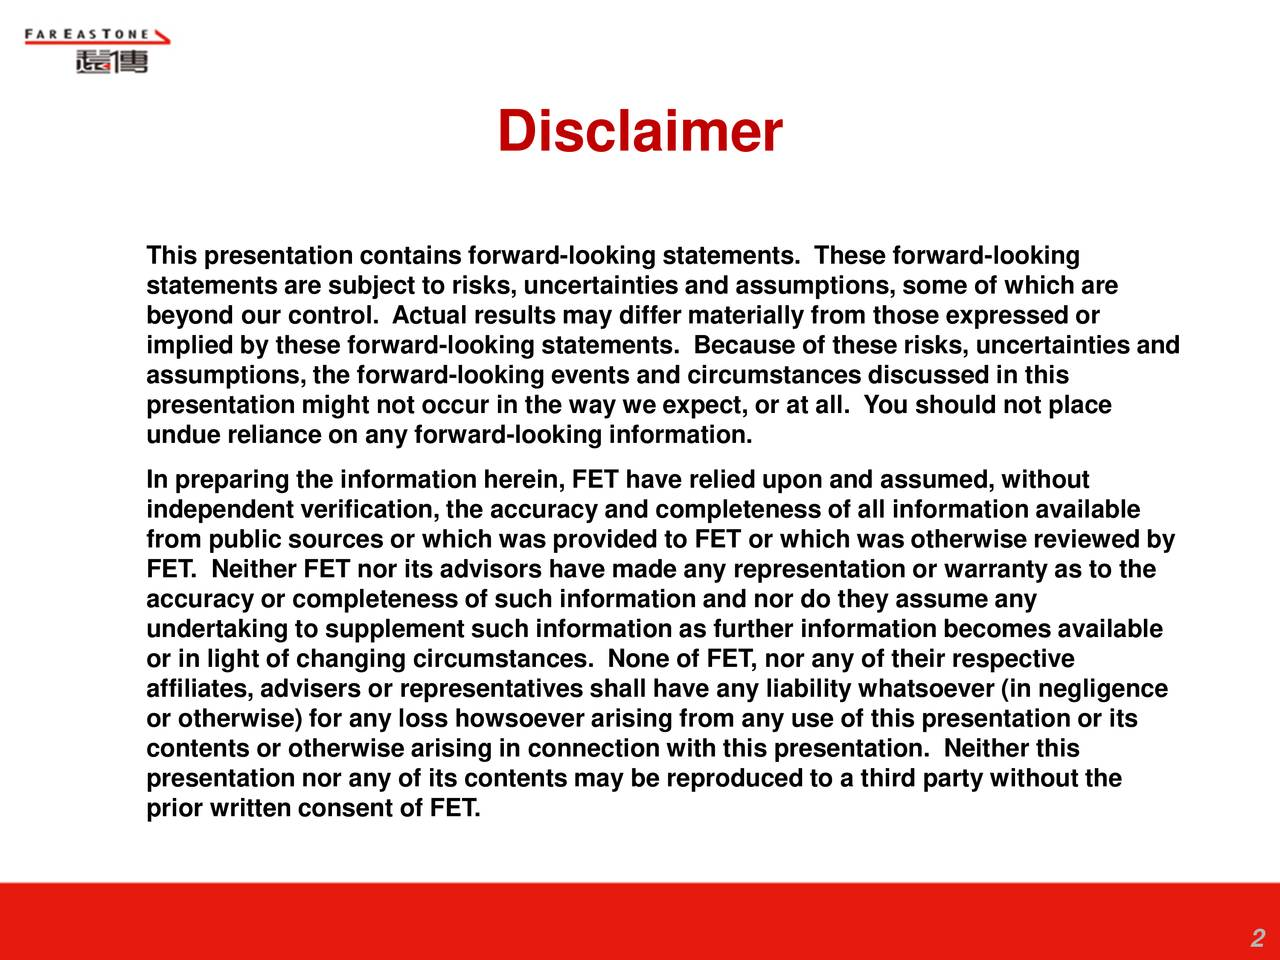 This presentation contains forward-looking statements. These forward-looking statements are subject to risks, uncertainties and assumptions, some of which are beyond our control. Actual results may differ materially from those expressed or implied by these forward-looking statements. Because of these risks, uncertainties and assumptions, the forward-looking events and circumstances discussed in this presentation might not occur in the way we expect, or at all. You should not place undue reliance on any forward-looking information. In preparing the information herein, FET have relied upon and assumed, without independent verification, the accuracy and completeness of all information available from public sources or which was provided to FET or which was otherwise reviewed by FET. Neither FET nor its advisors have made any representation or warranty as to the accuracy or completeness of such information and nor do they assume any undertaking to supplement such information as further information becomes available or in light of changing circumstances. None of FET, nor any of their respective affiliates, advisers or representatives shall have any liability whatsoever (in negligence or otherwise) for any loss howsoever arising from any use of this presentation or its contents or otherwise arising in connection with this presentation. Neither this presentation nor any of its contents may be reproduced to a third party without the prior written consent of FET.